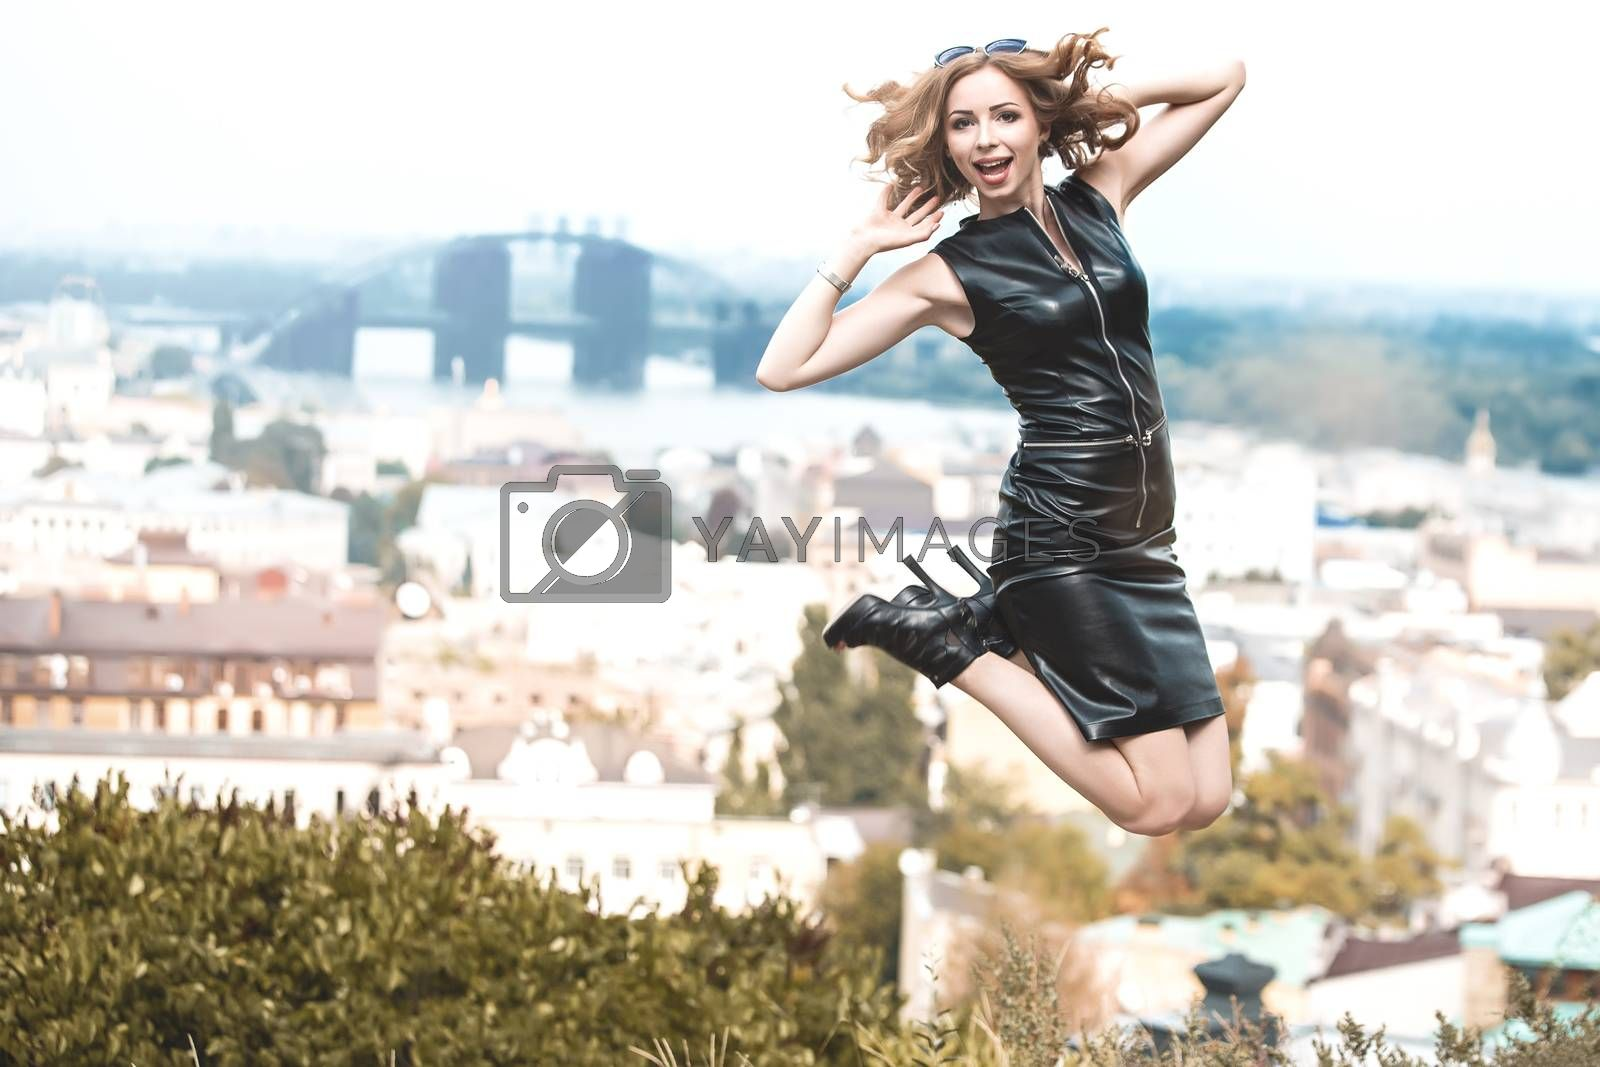 Expressive girl with long hair having fun in city park. She wears in black skin dress. She is jumping excited.